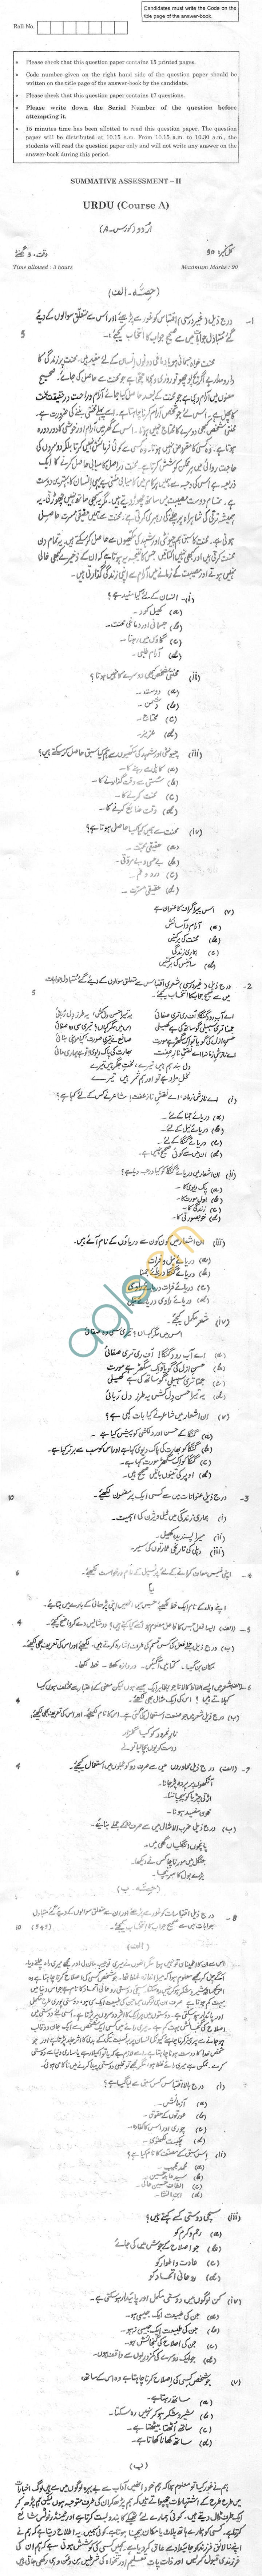 CBSE Compartment Exam 2013 Class X Question Paper - Urdu (Course A)